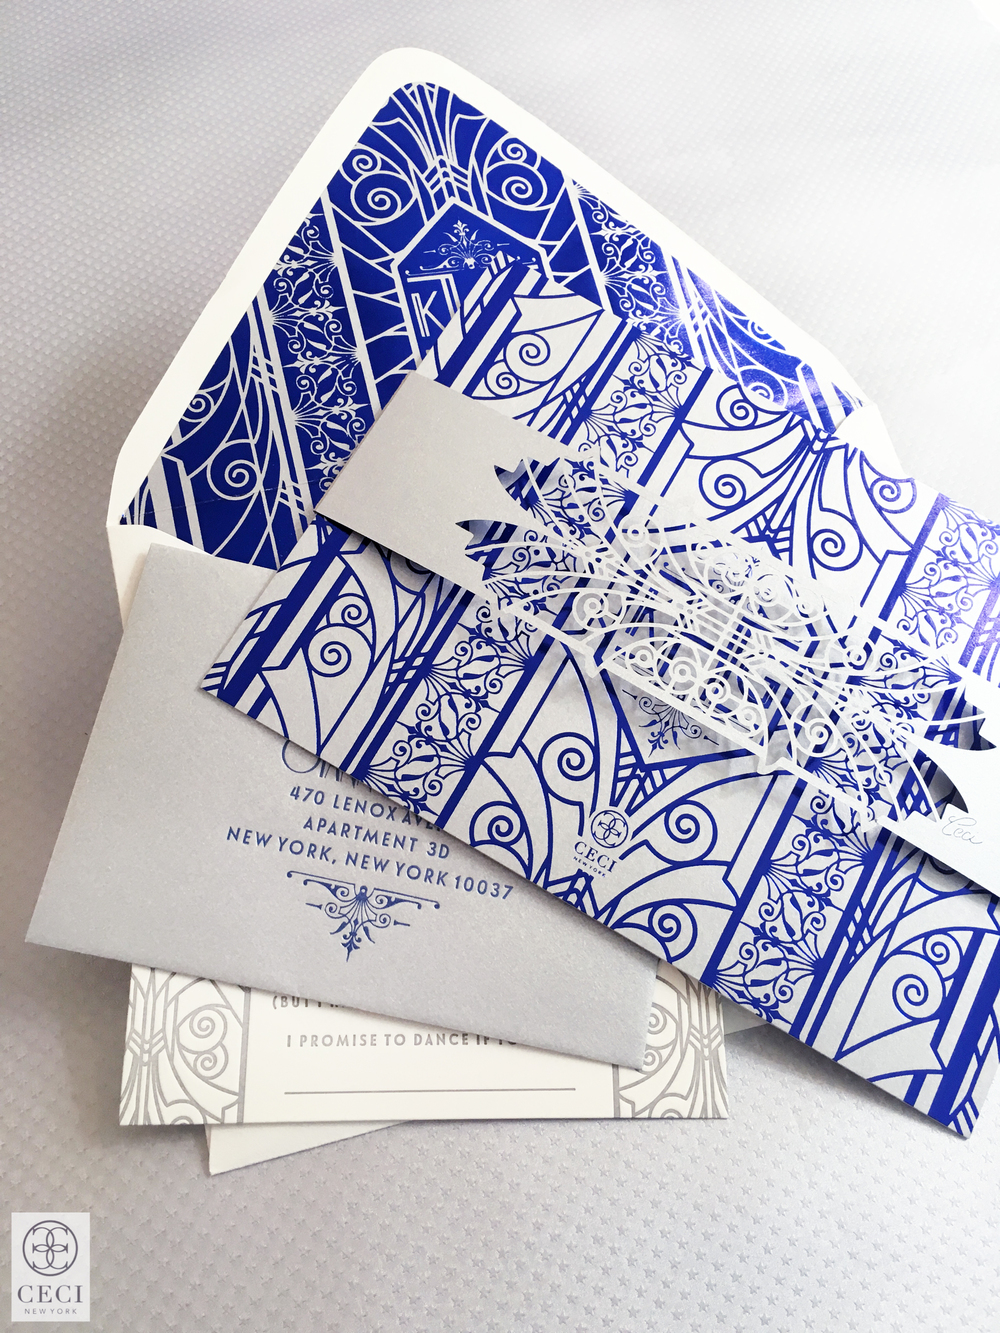 Ceci_New_York_New_Jersey_Invitations_Wedding_New_York_Elegance_Silver_Blue_Letterpress_Deco_Classic_Foil_Stamping_Custom_Couture_Personalized-104.jpg